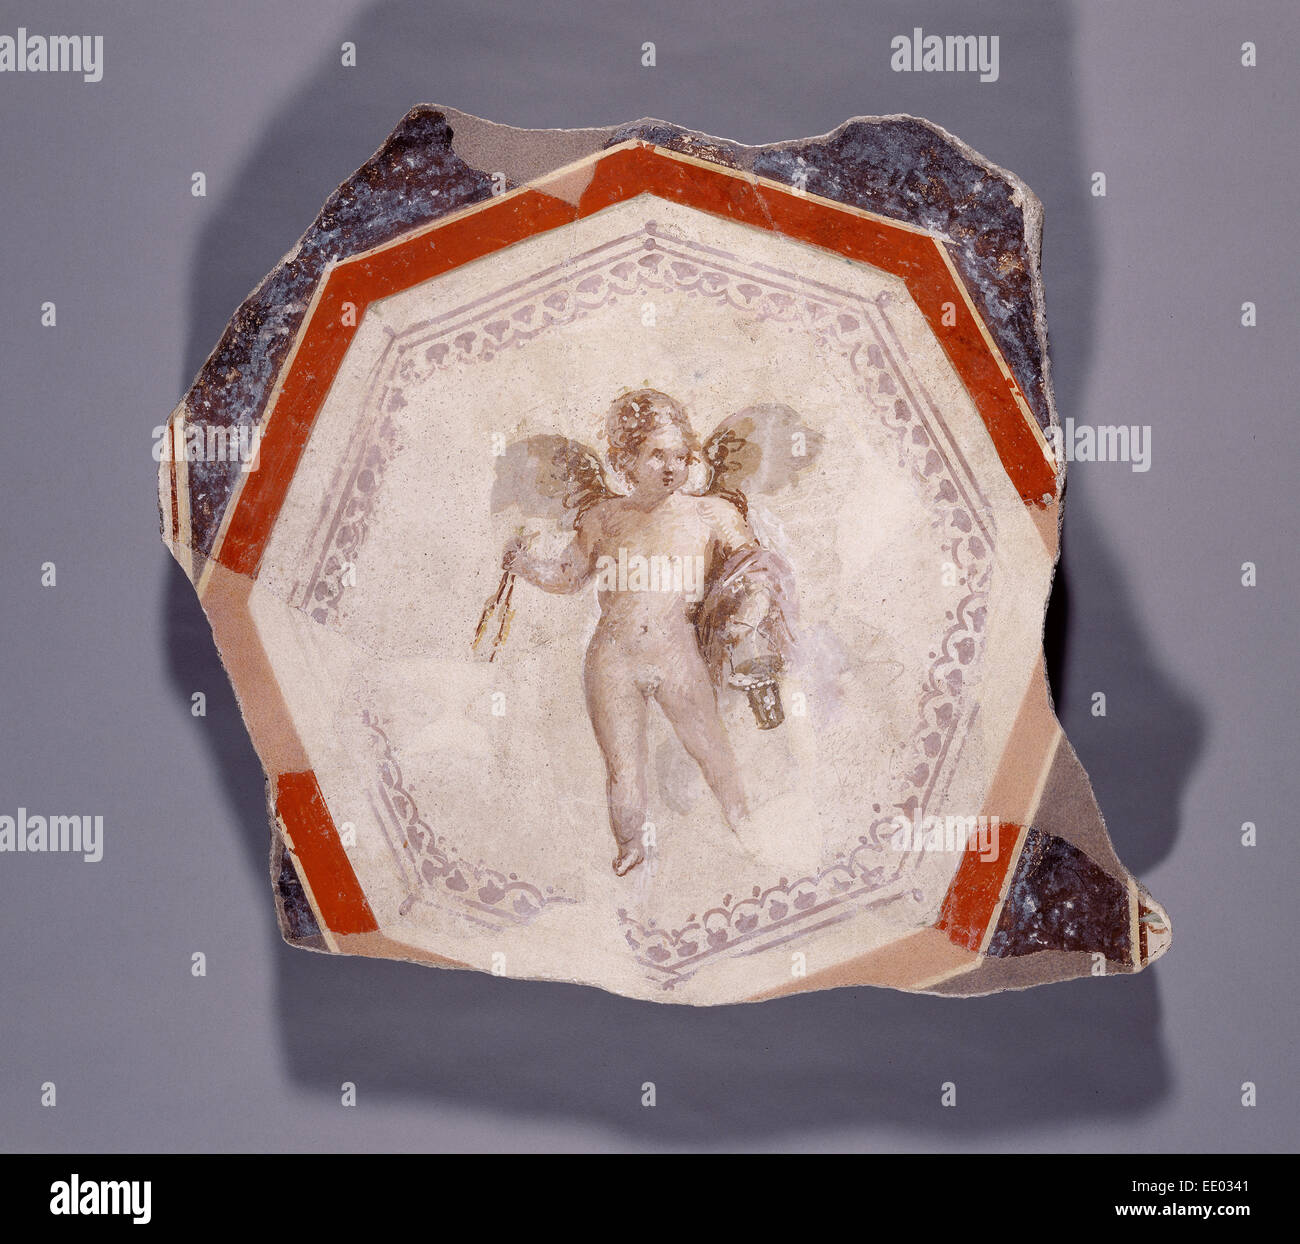 Fresco Depicting Cupid holding Two Sticks and a Pail; Unknown; Italy, Europe; 1st century; Plaster and pigment - Stock Image